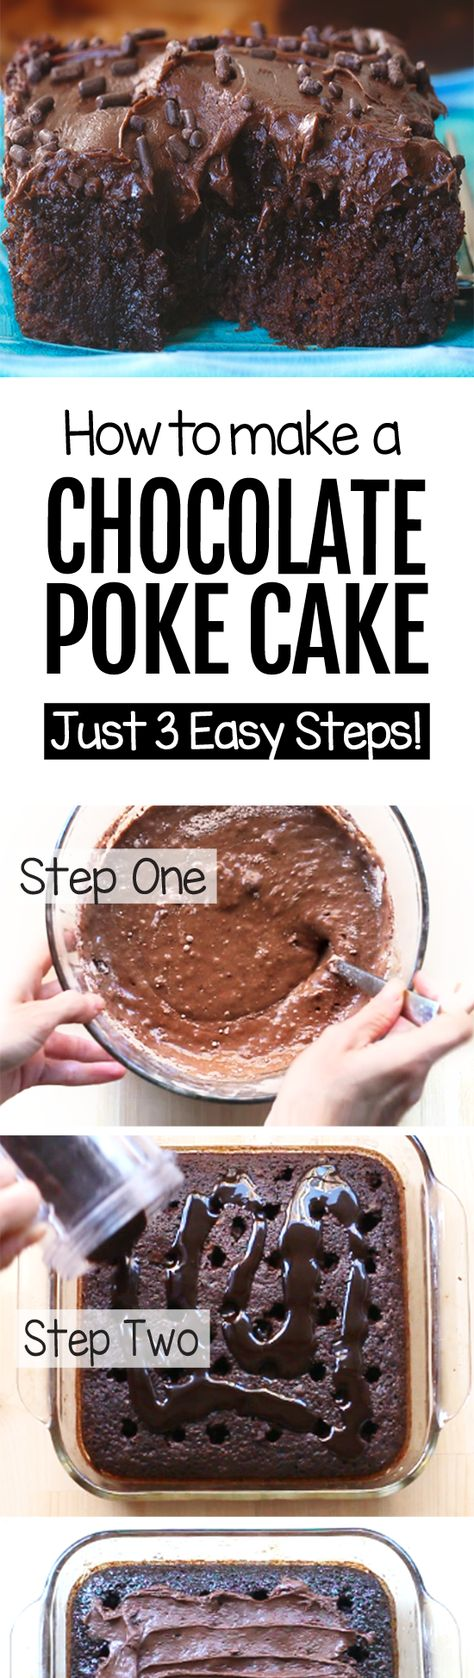 The popular chocolate poke cake recipe that is taking over pinterest, with just 3 easy steps. It's great for a quick dessert for parties or weekends #dessert #chocolate #cake #pokecake #chocolatecake #easyrecipe #recipe #chocolatedessert #partyrecipe #best #chocolatecoveredkatie